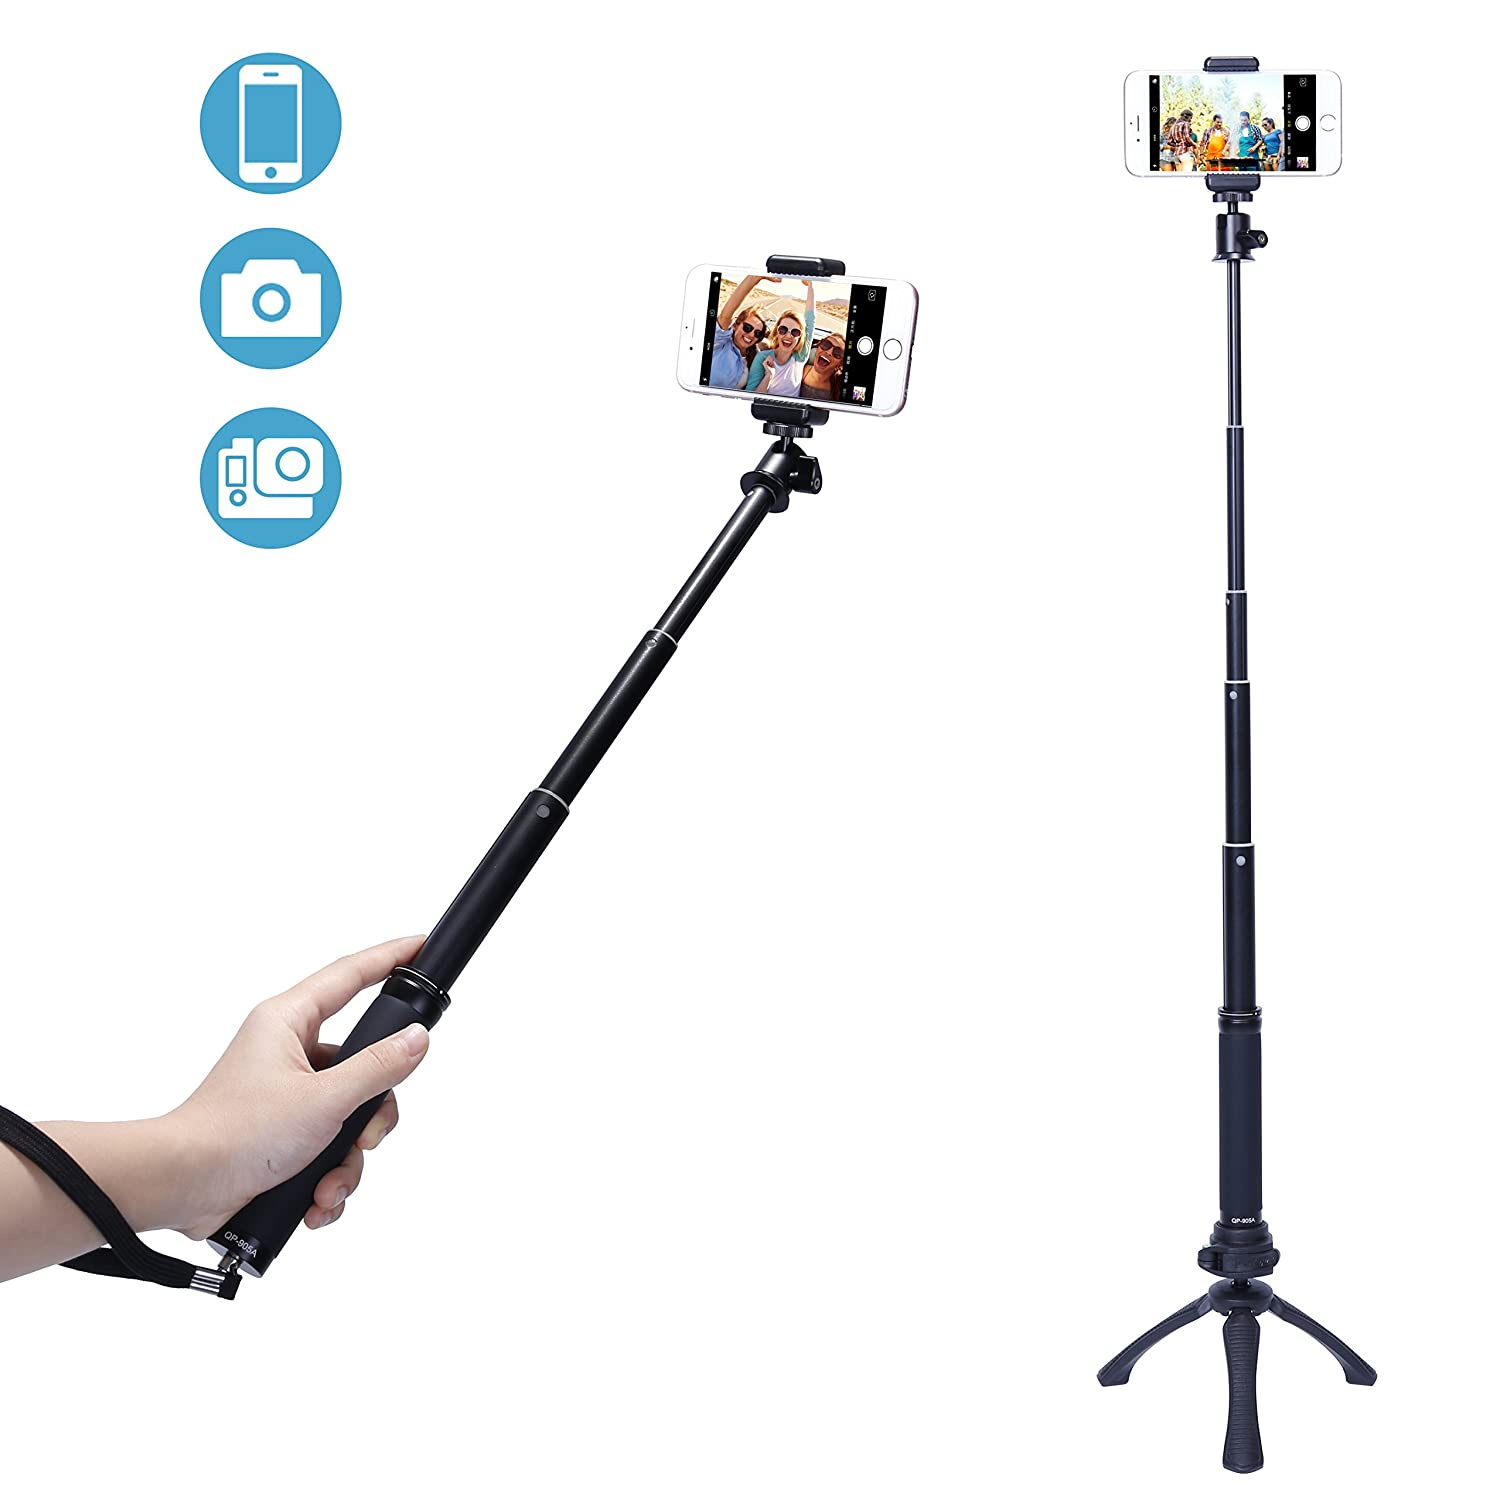 Fotopro Mini Tripod Sets Selfie Stick, Mobile Phone Adapter, Bluetooth Remote Shutter Release for The Camera, Gopro, iPhone, Samsung and Other Smartphones